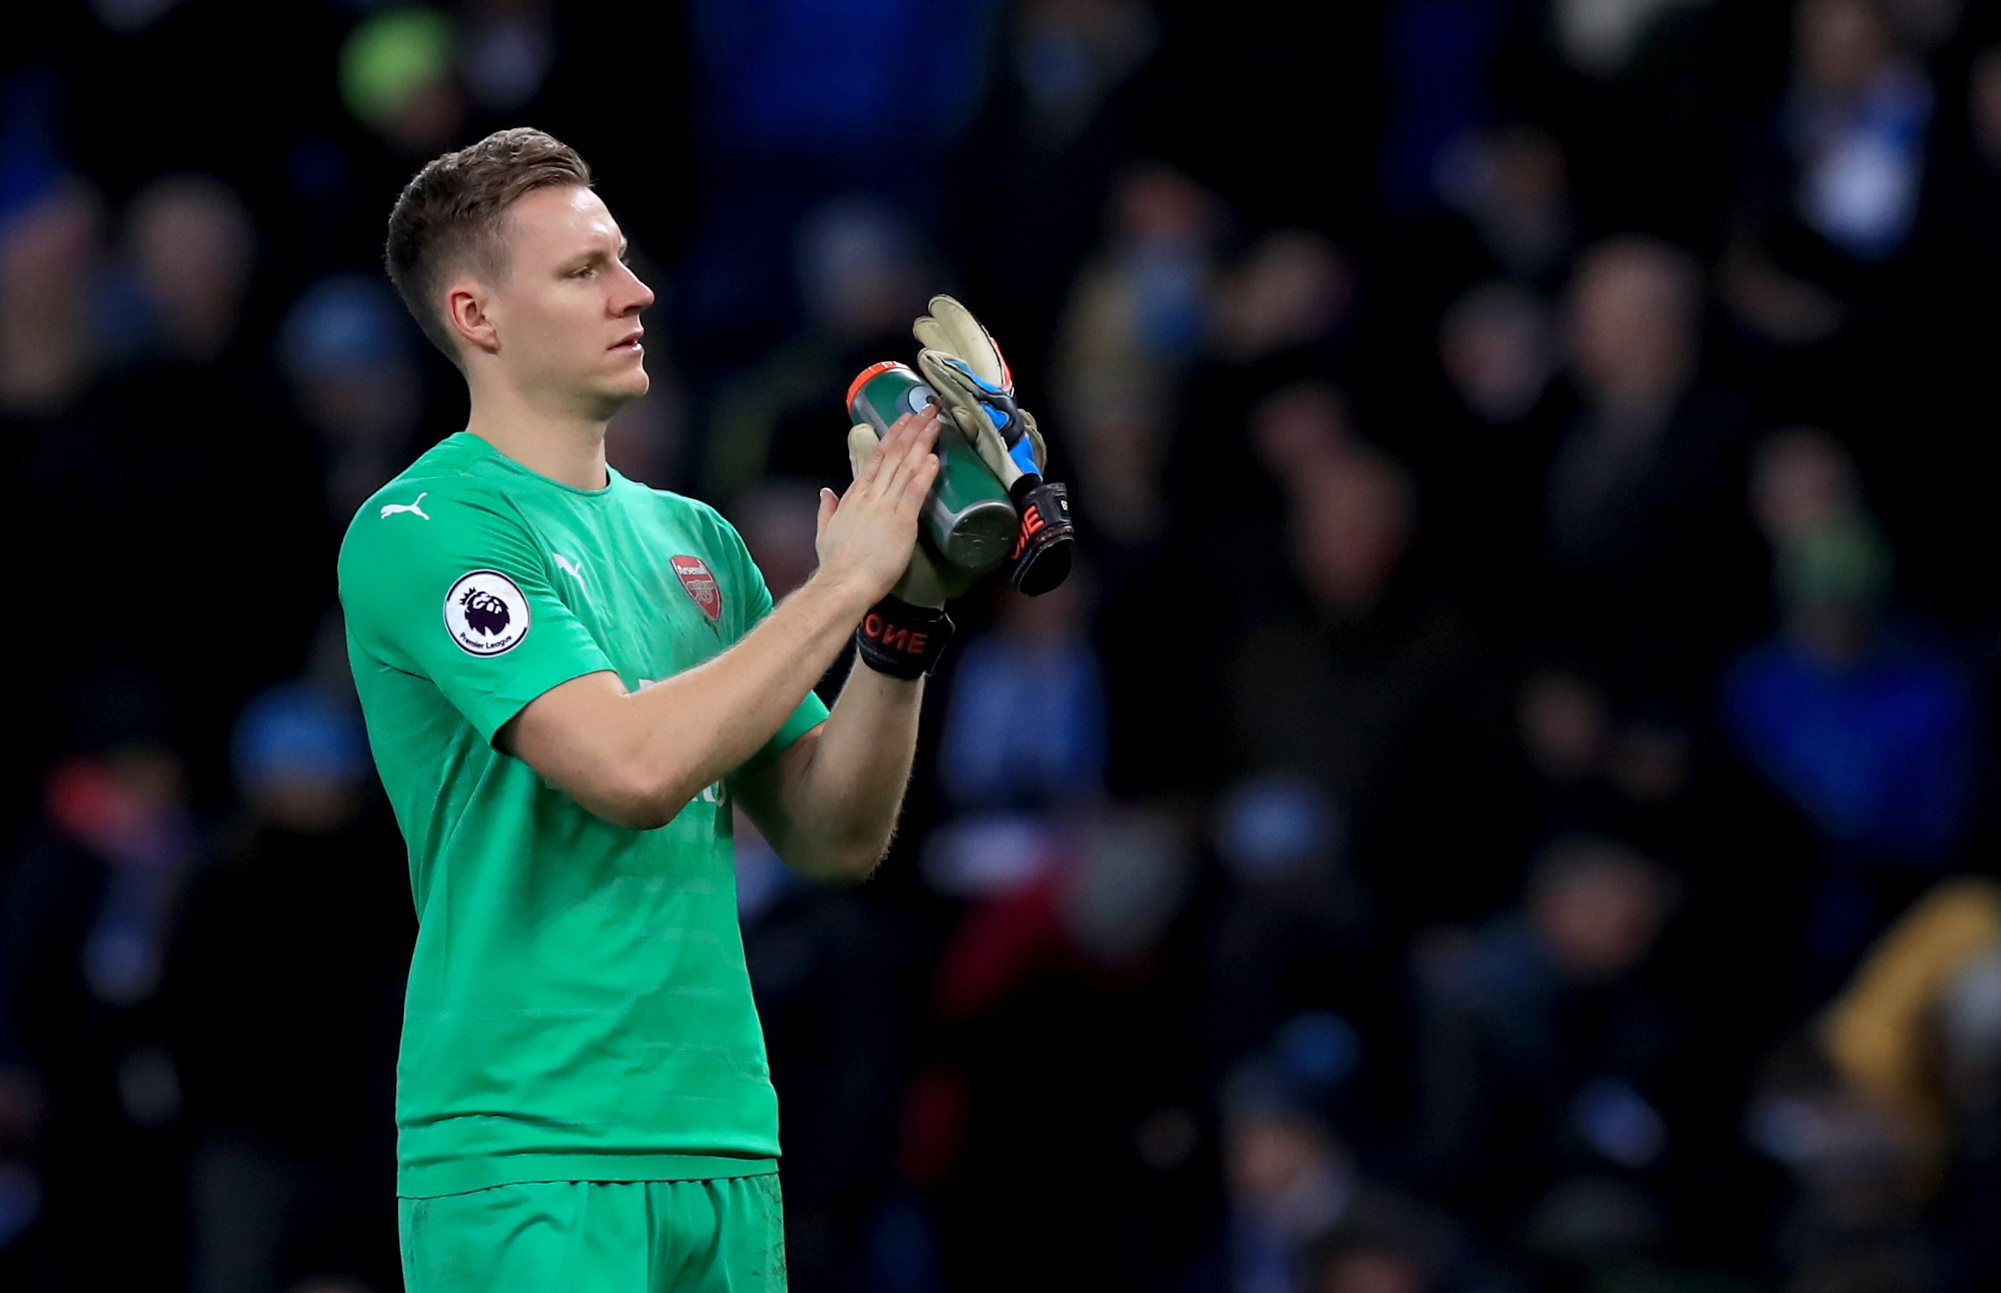 Unai Emery on Bernd Leno's performance following defeat to Wolves